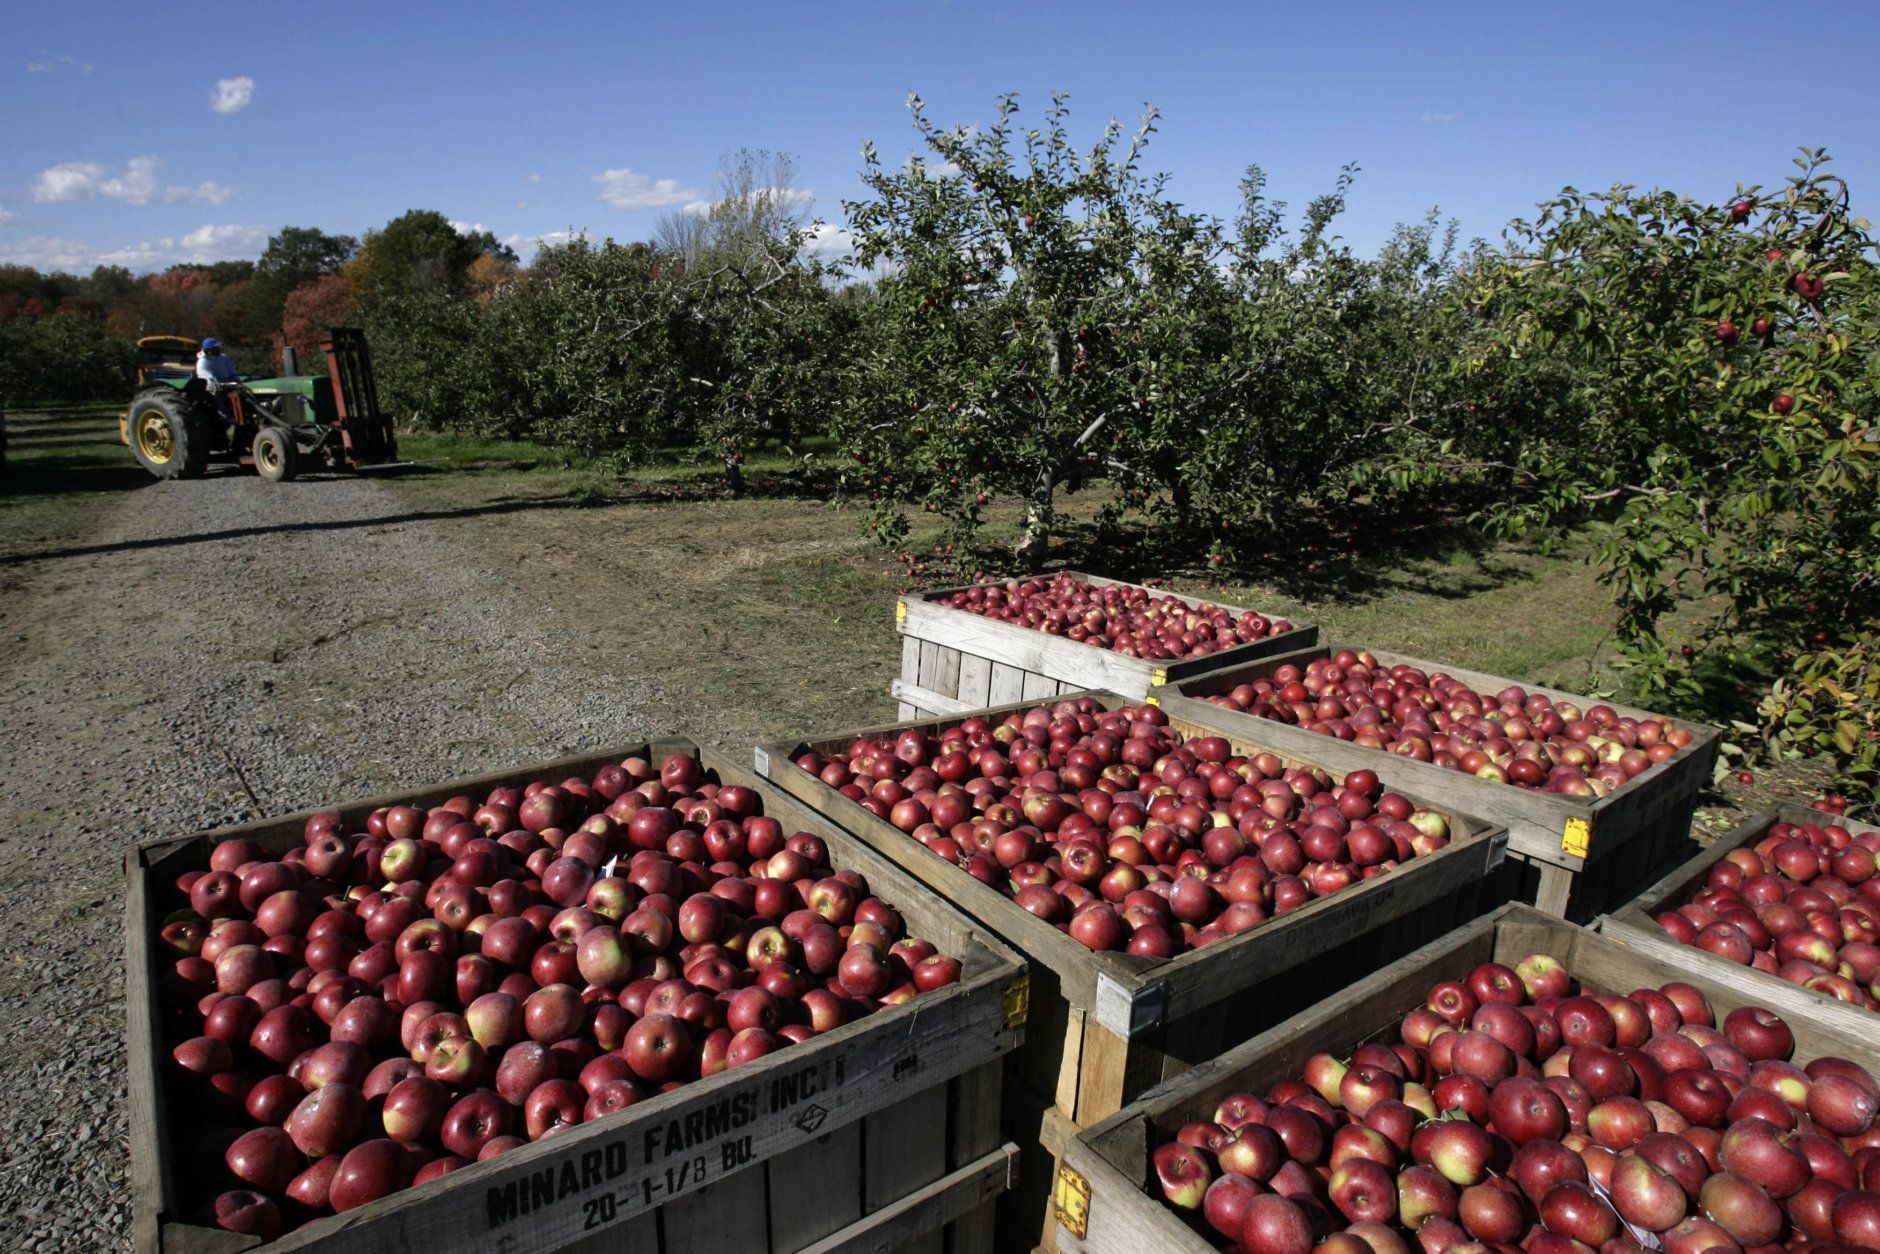 """<p><a href=""""http://www.catoctinmountainorchard.com/""""><b>Catoctin Mountain Orchard</b></a><br /> <em><span style=""""font-weight: 400;"""">15036 N Franklinville Rd., Thurmont, Maryland</span></em></p> <p>Pick your own apples, cut your own flowers and pick out your own homemade pies and preserves at Catoctin Mountain Orchard, just north of Frederick, Maryland.</p>"""